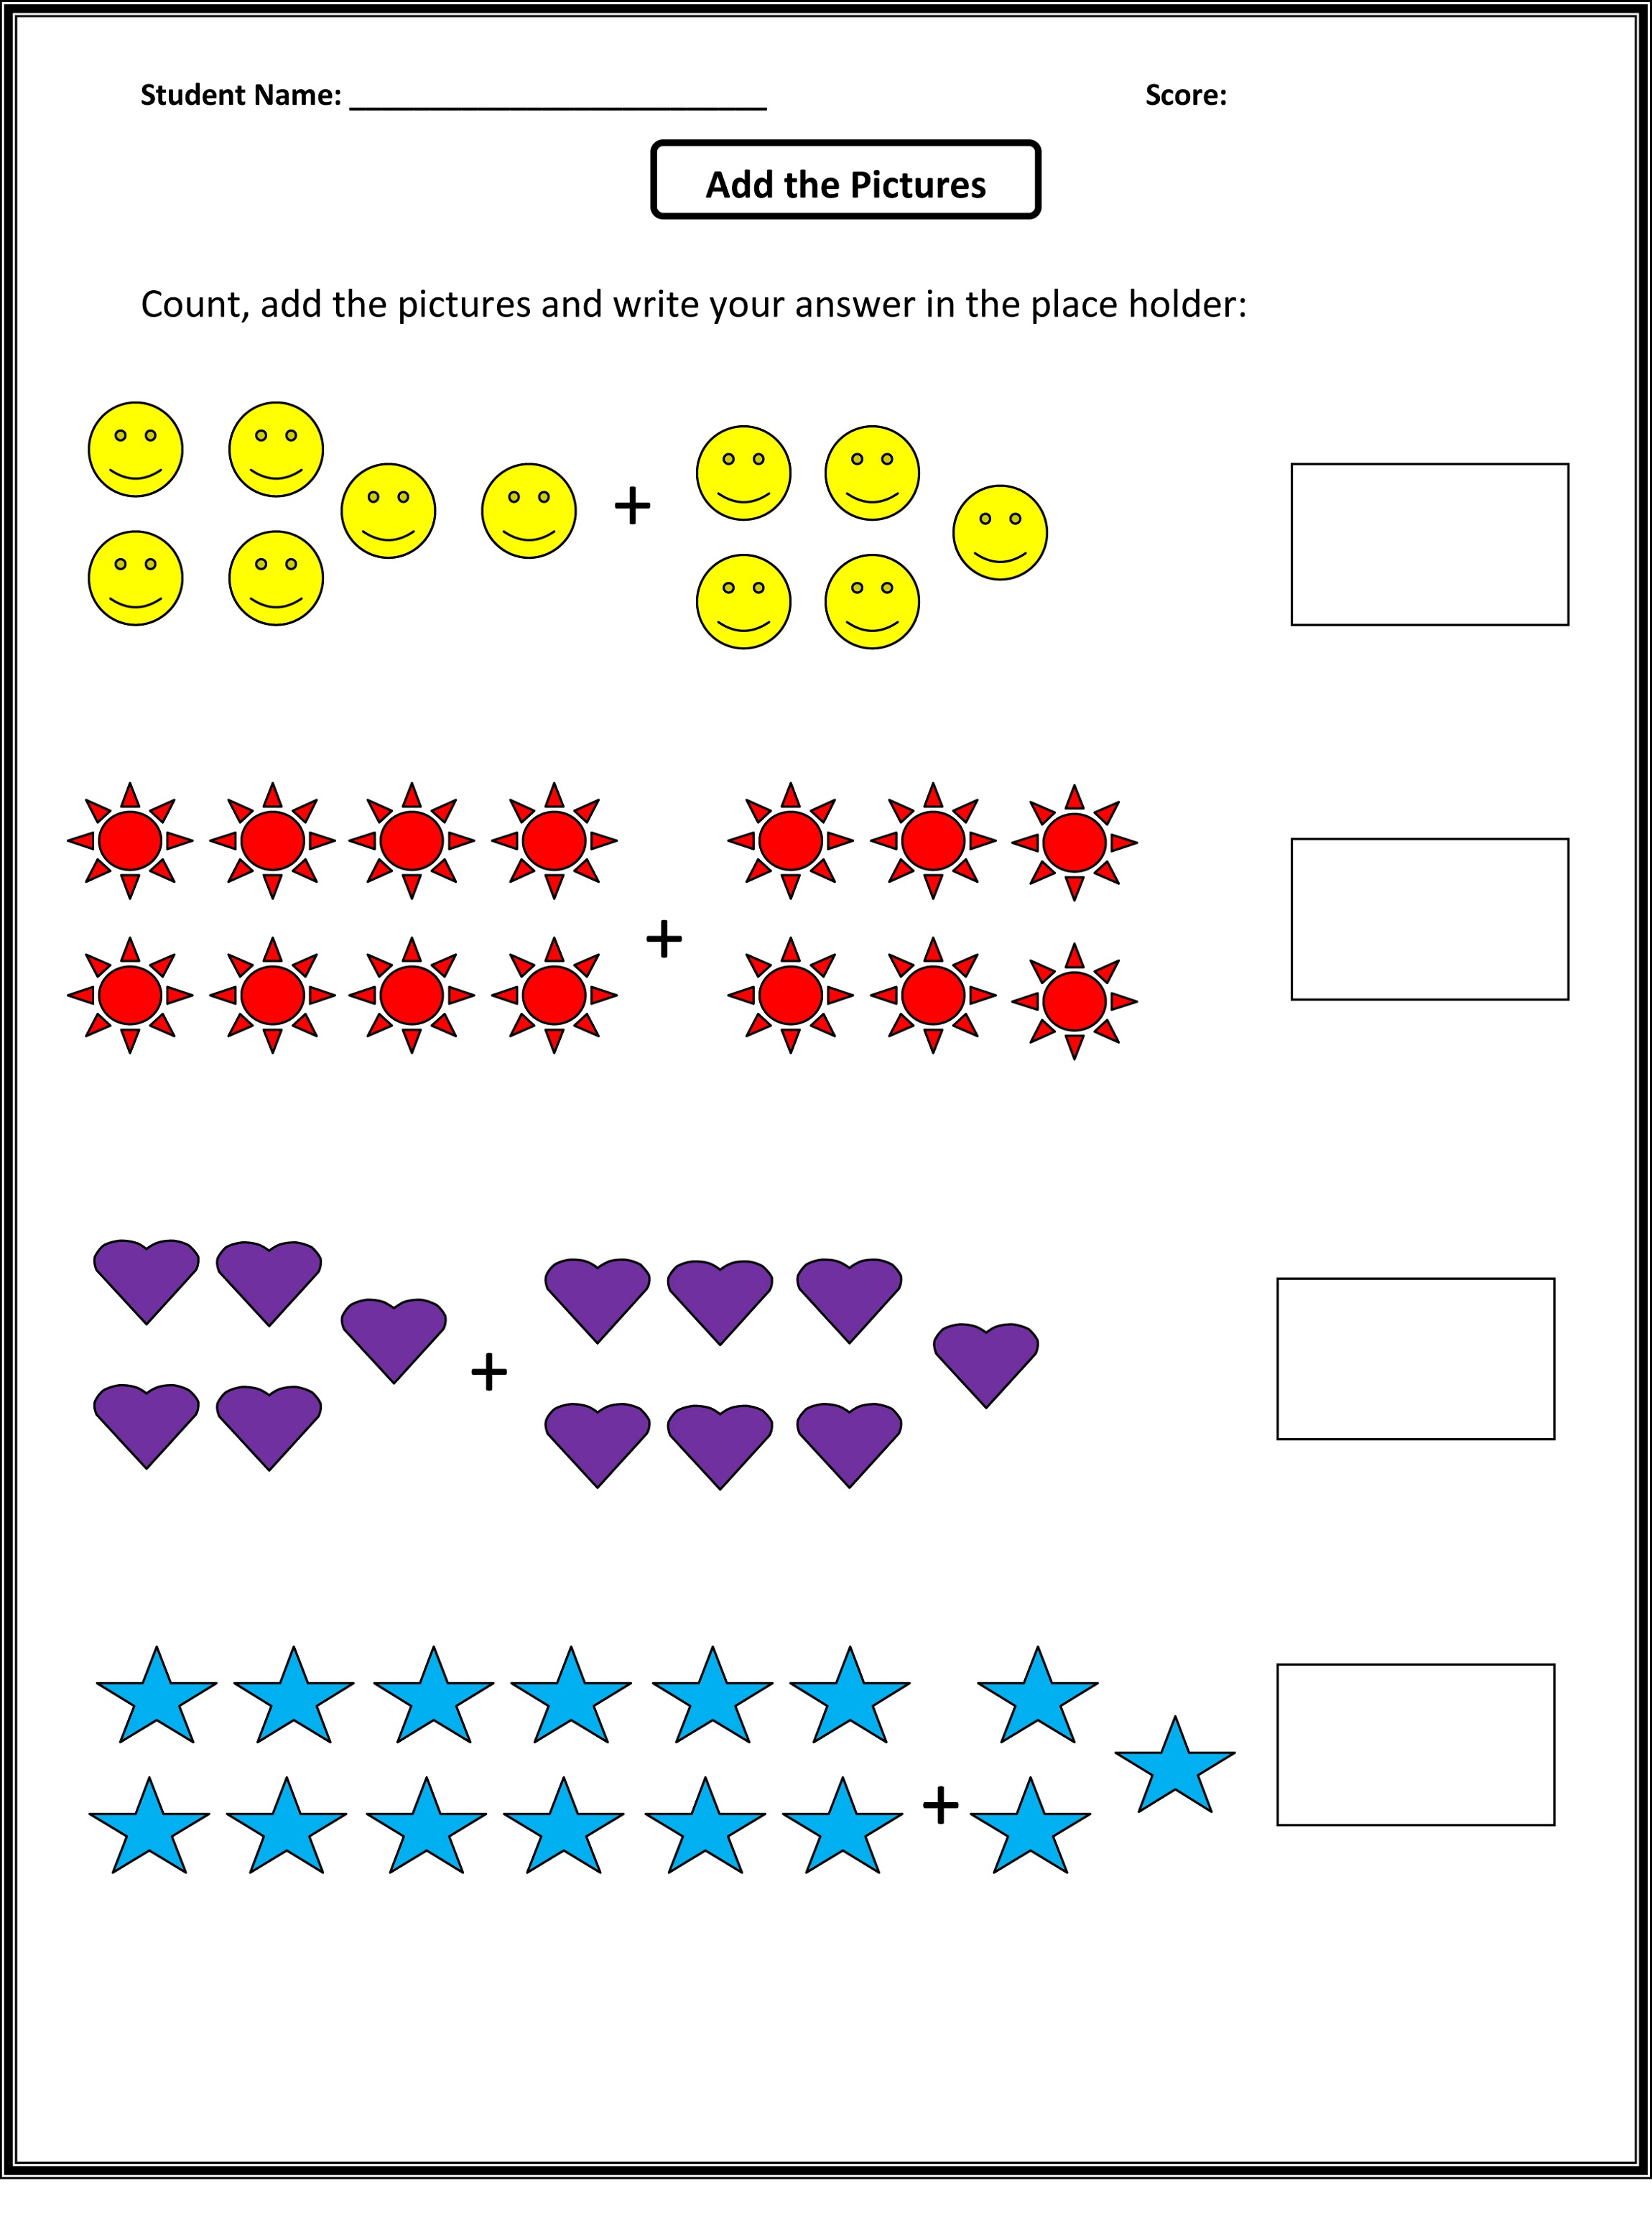 Free Math Worksheets For Grade 1